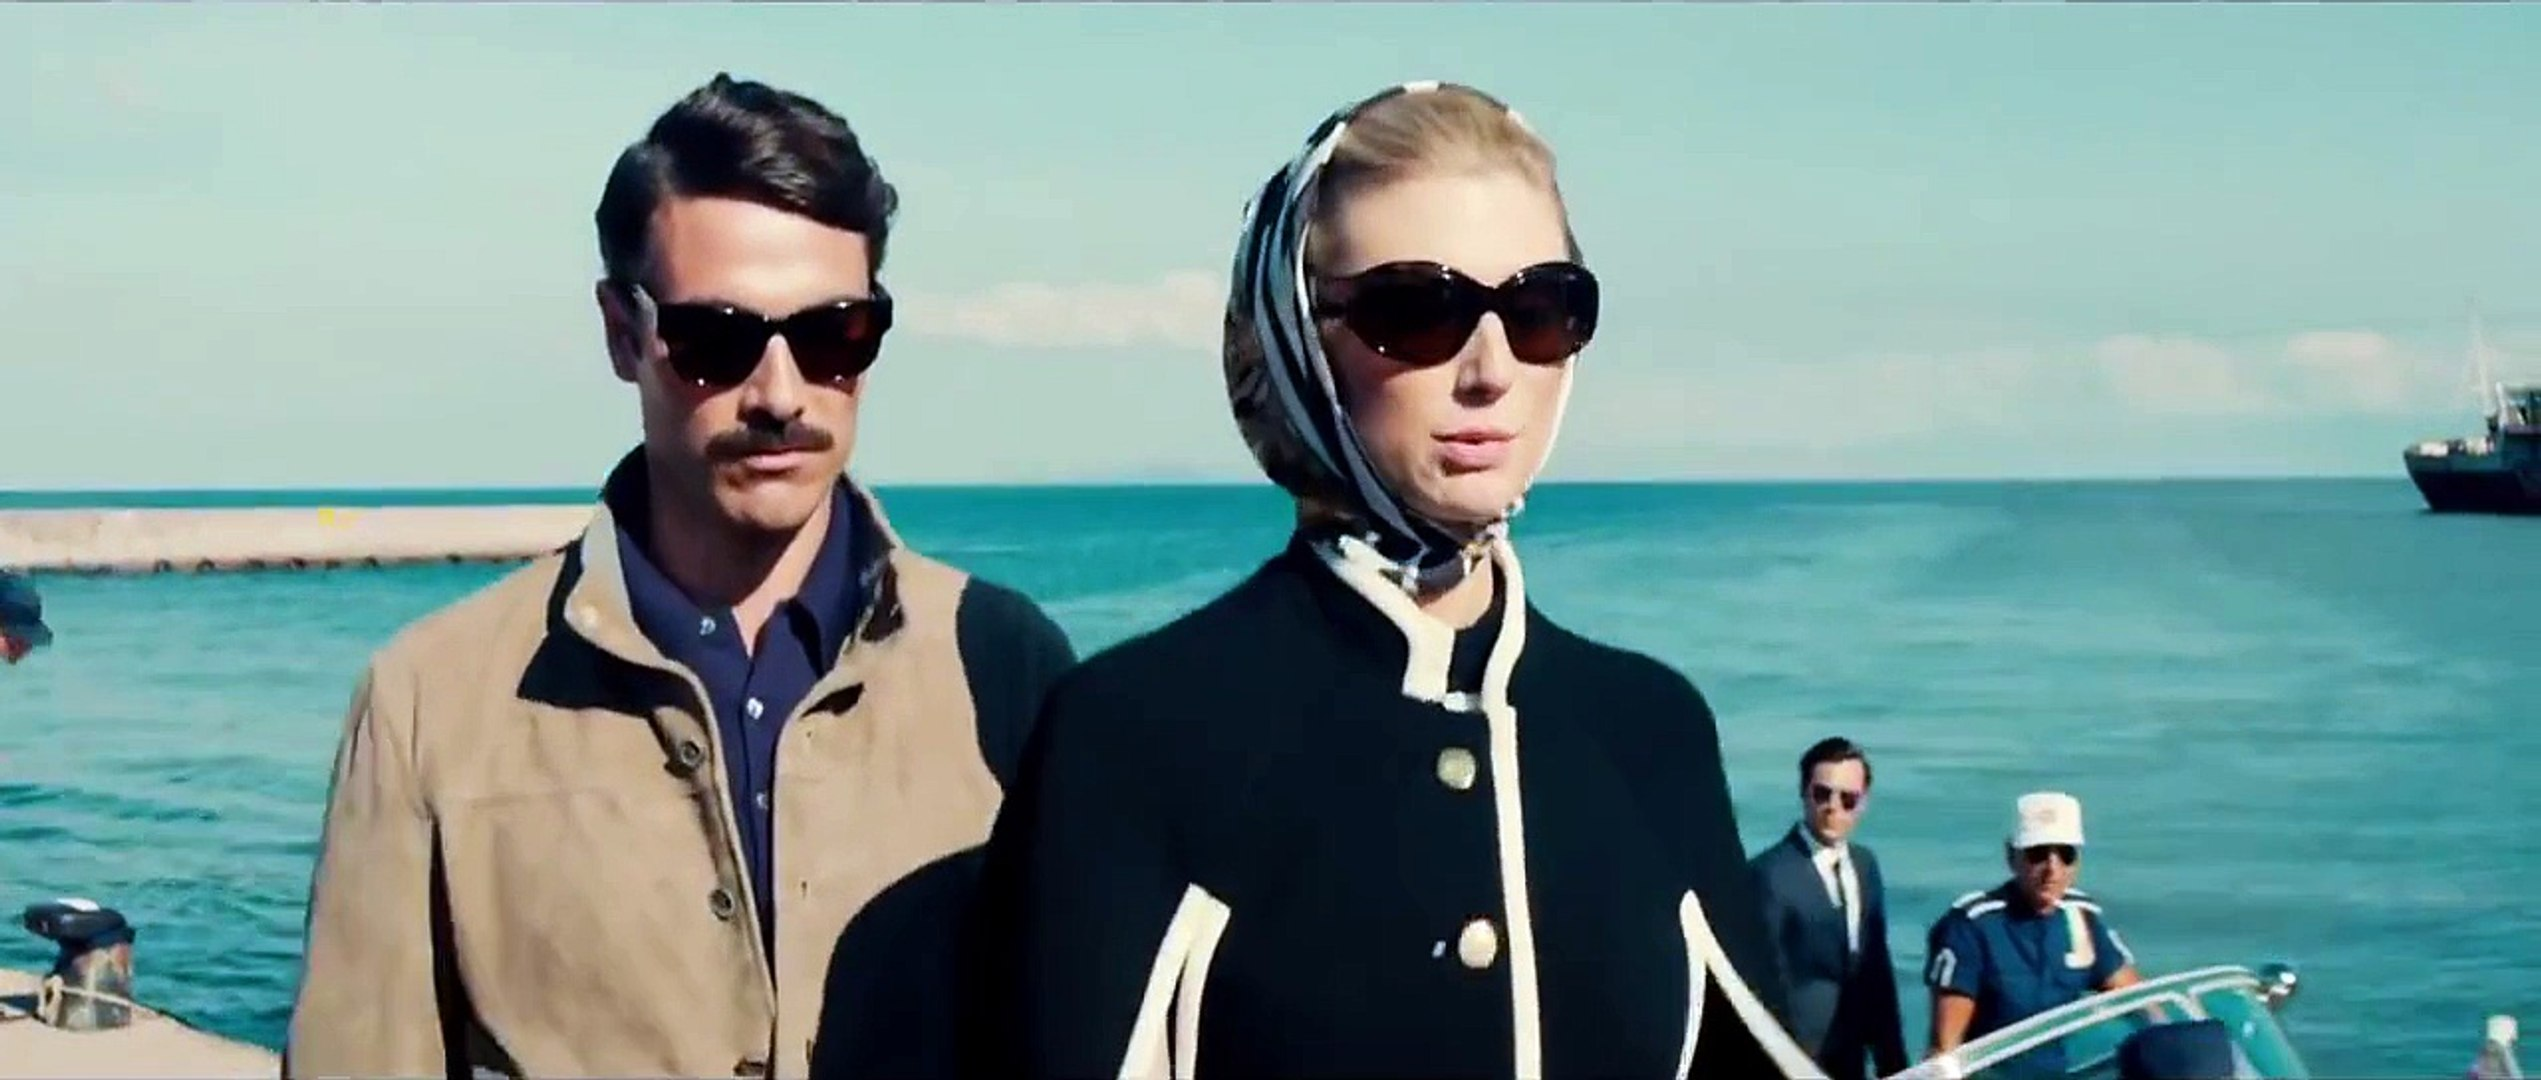 ▶ The Man From U.N.C.L.E. Official Trailer #2 (2015) – Henry Cavill, Armie Hammer Spy Movie HD - new